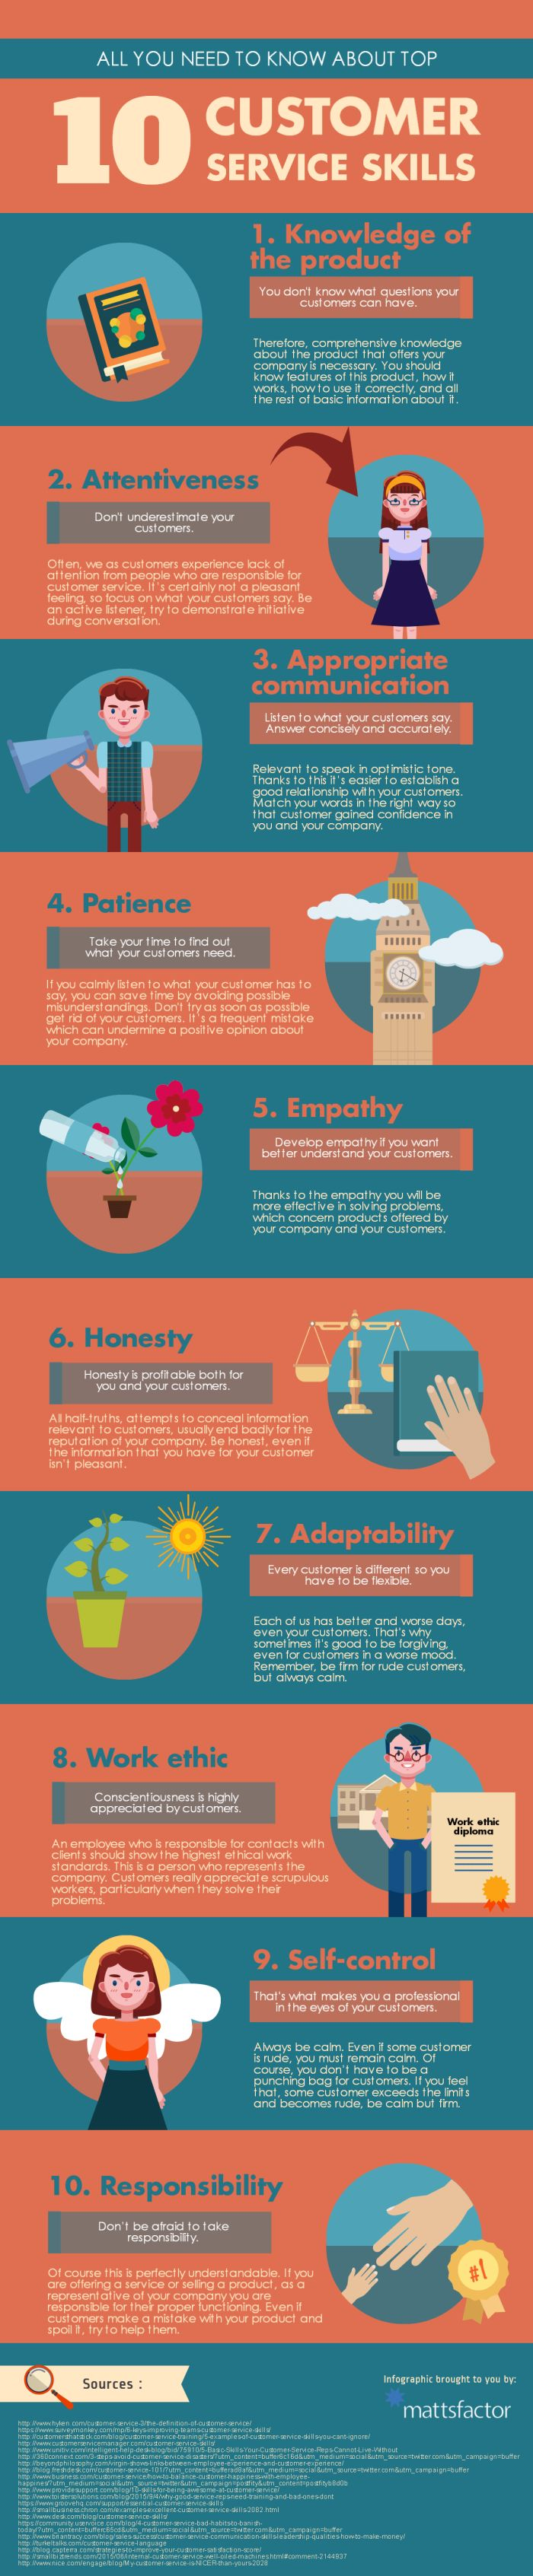 All You Need To Know About Top 10 Customer Service Skills #Infographic ~ Visualistan